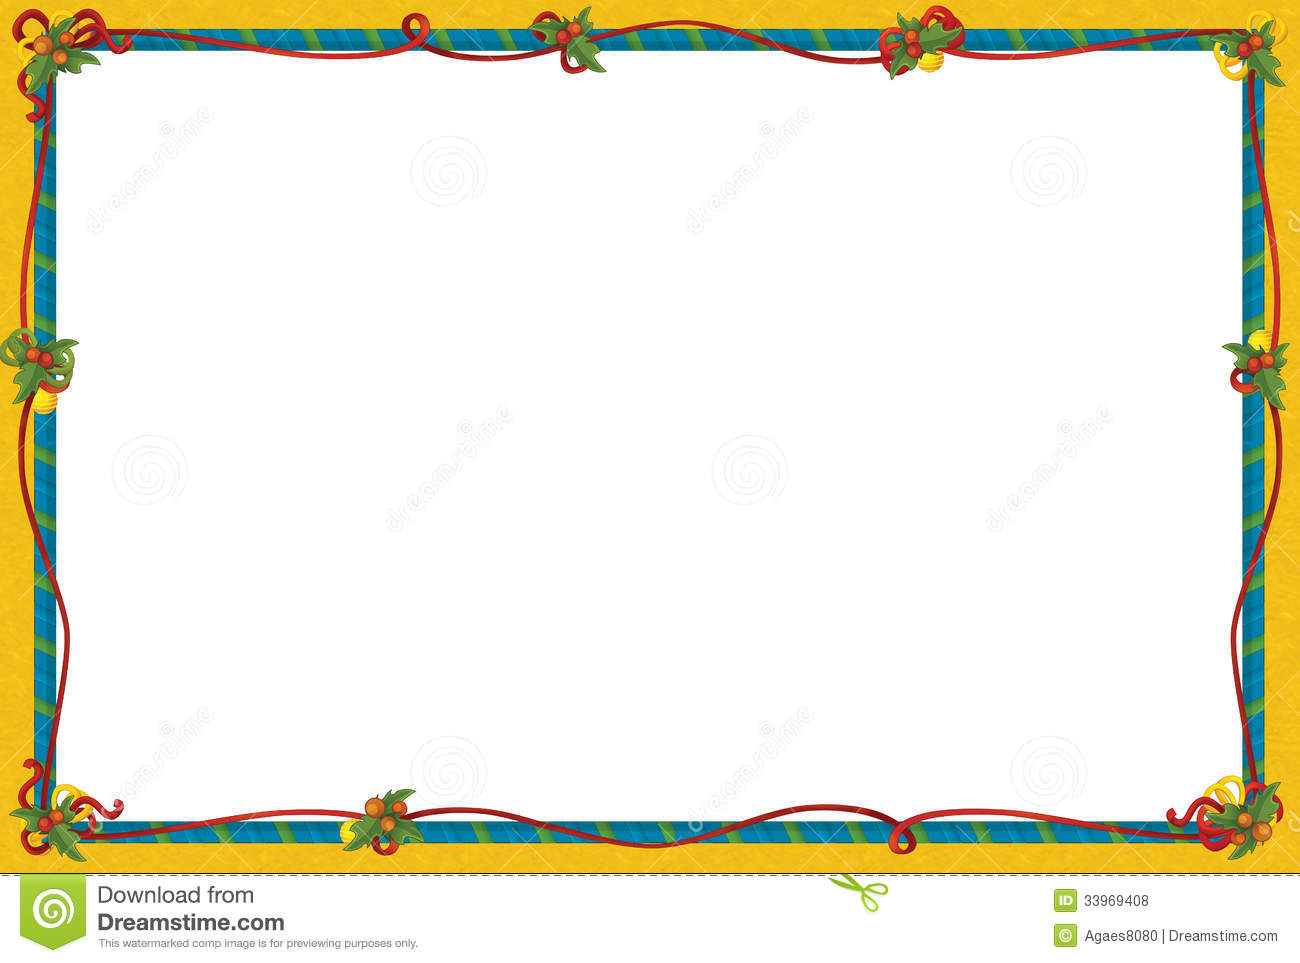 The Christmas Frame - Border - Cartoon Illustration Stock ...